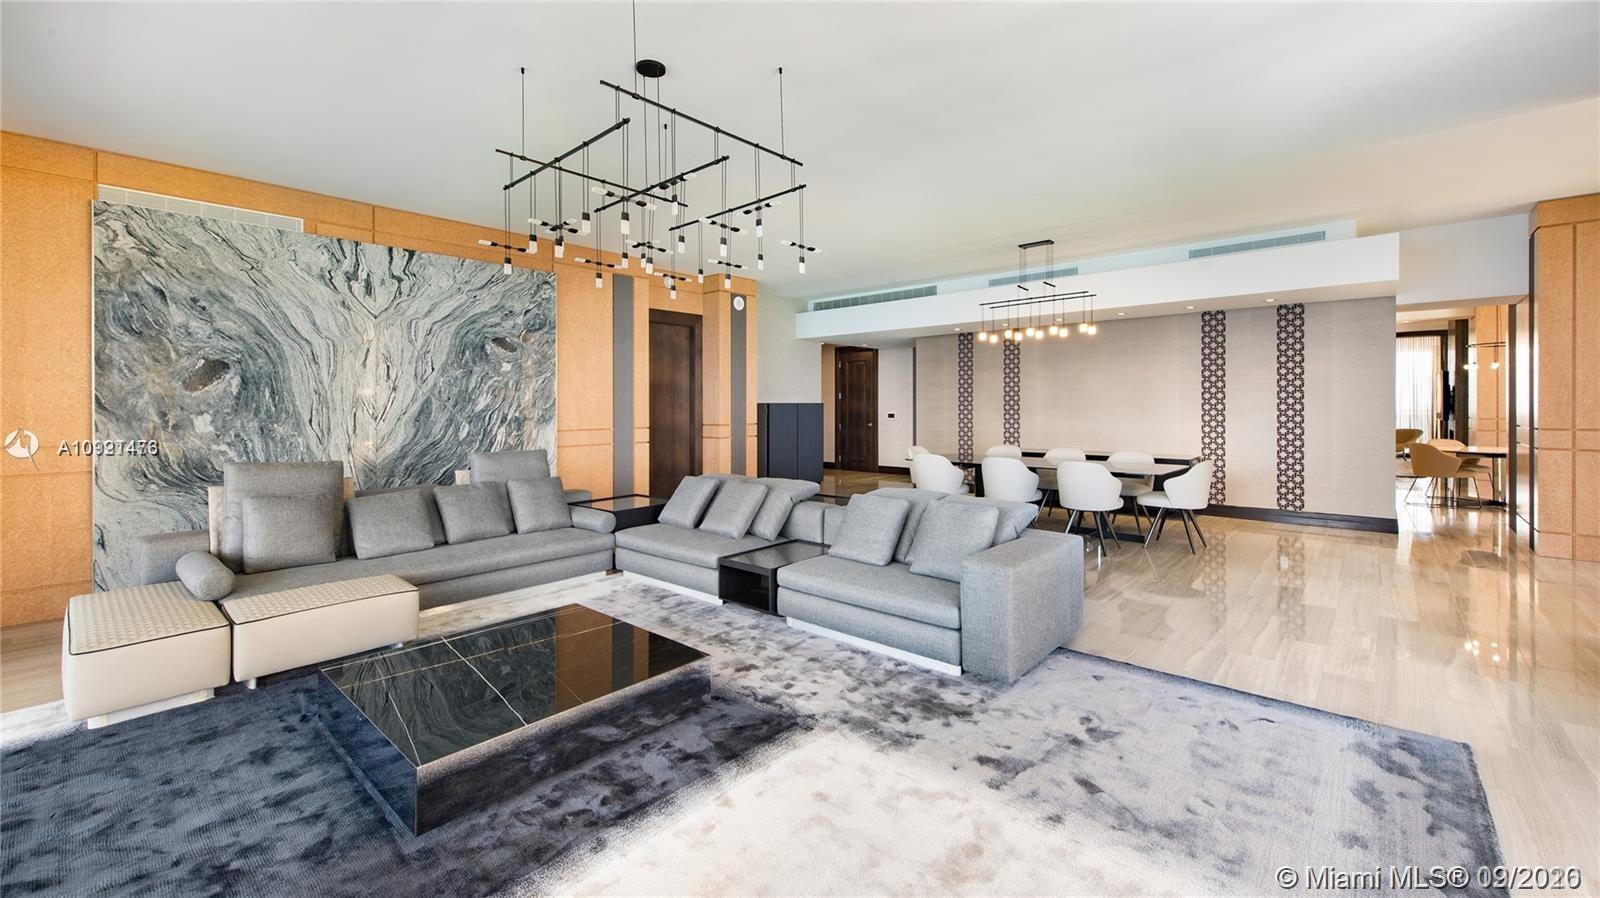 17749 Collins Ave, Unit #3001 Luxury Real Estate